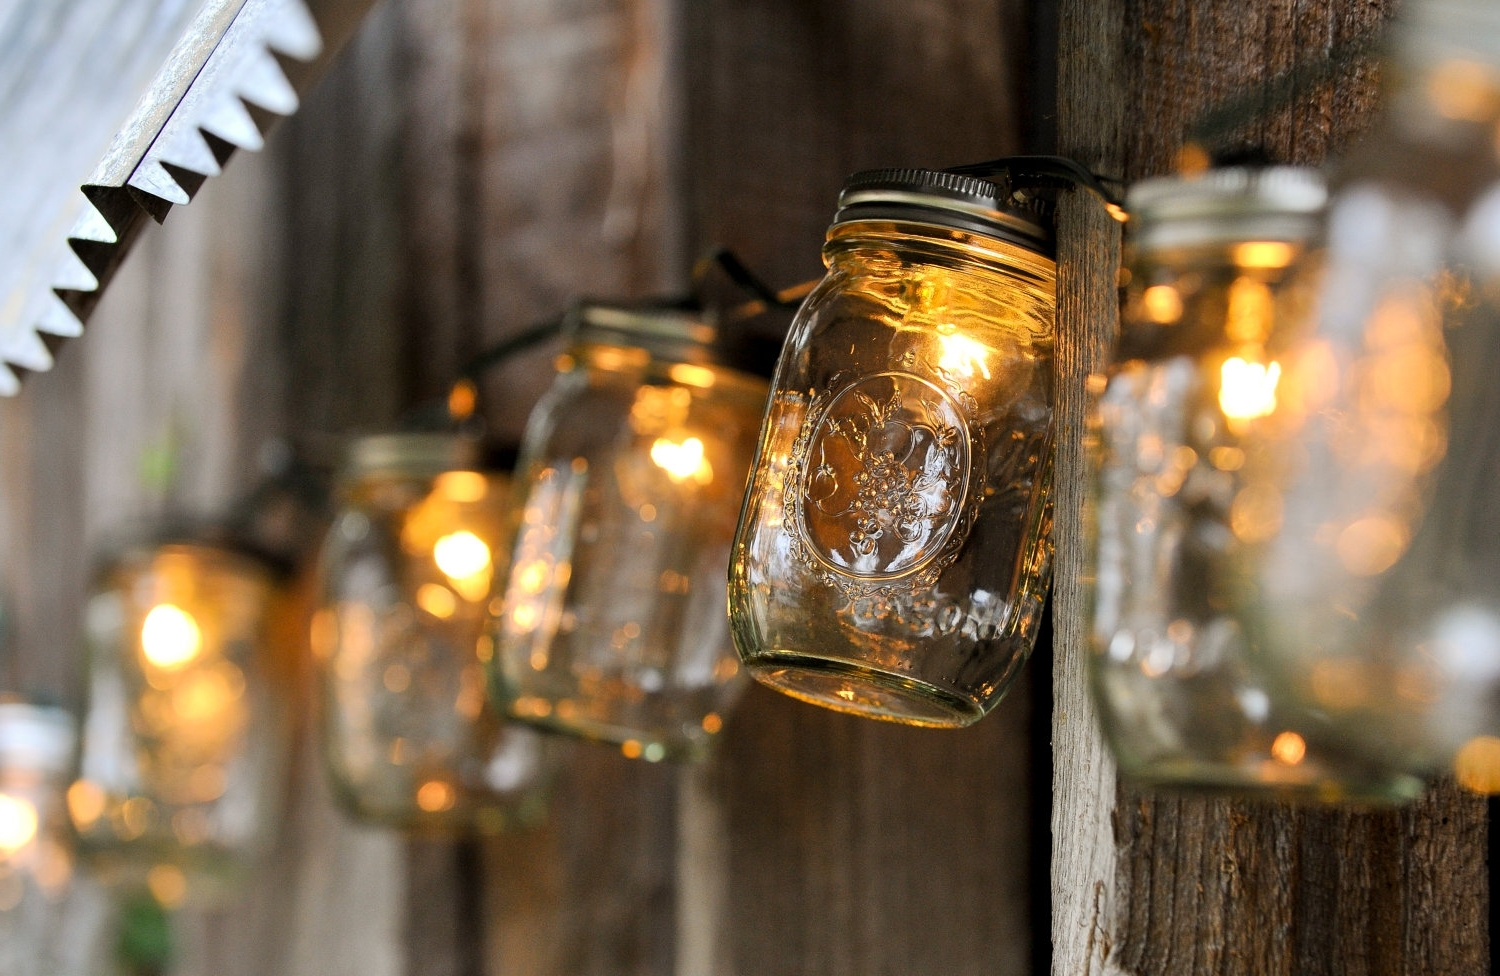 27 Things To Do With String Lights (View 15 of 20)